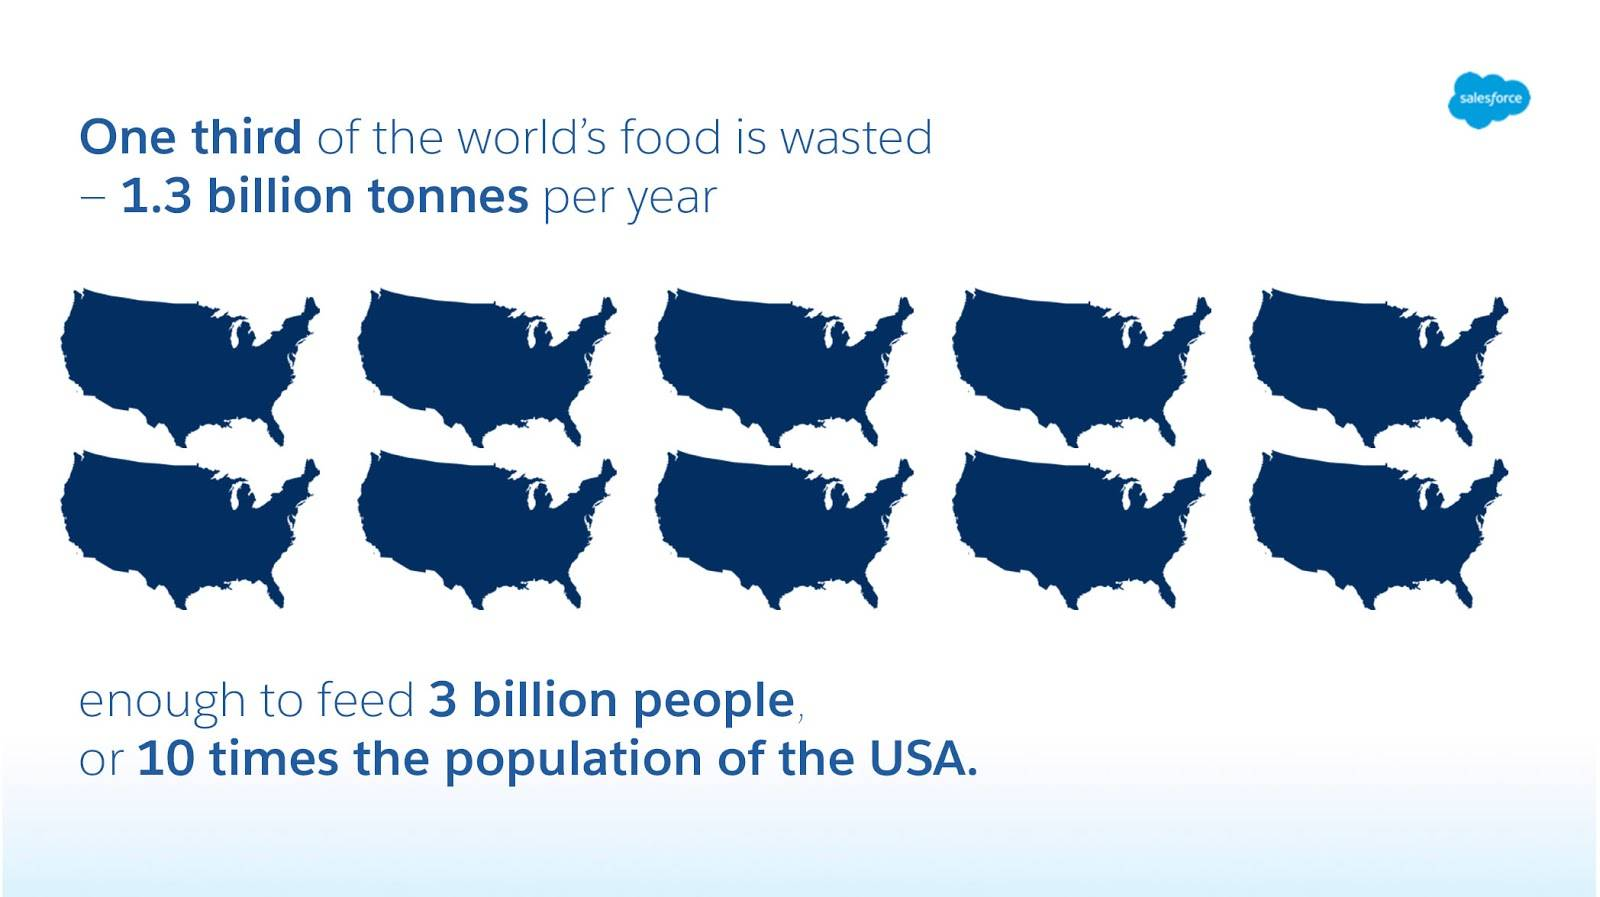 One-third of the world's food is wasted—1.3 billion tonnes per year, enough to feed 3 billion people or 10 times the population of the USA. Source: Tristram Stuart/ FAO